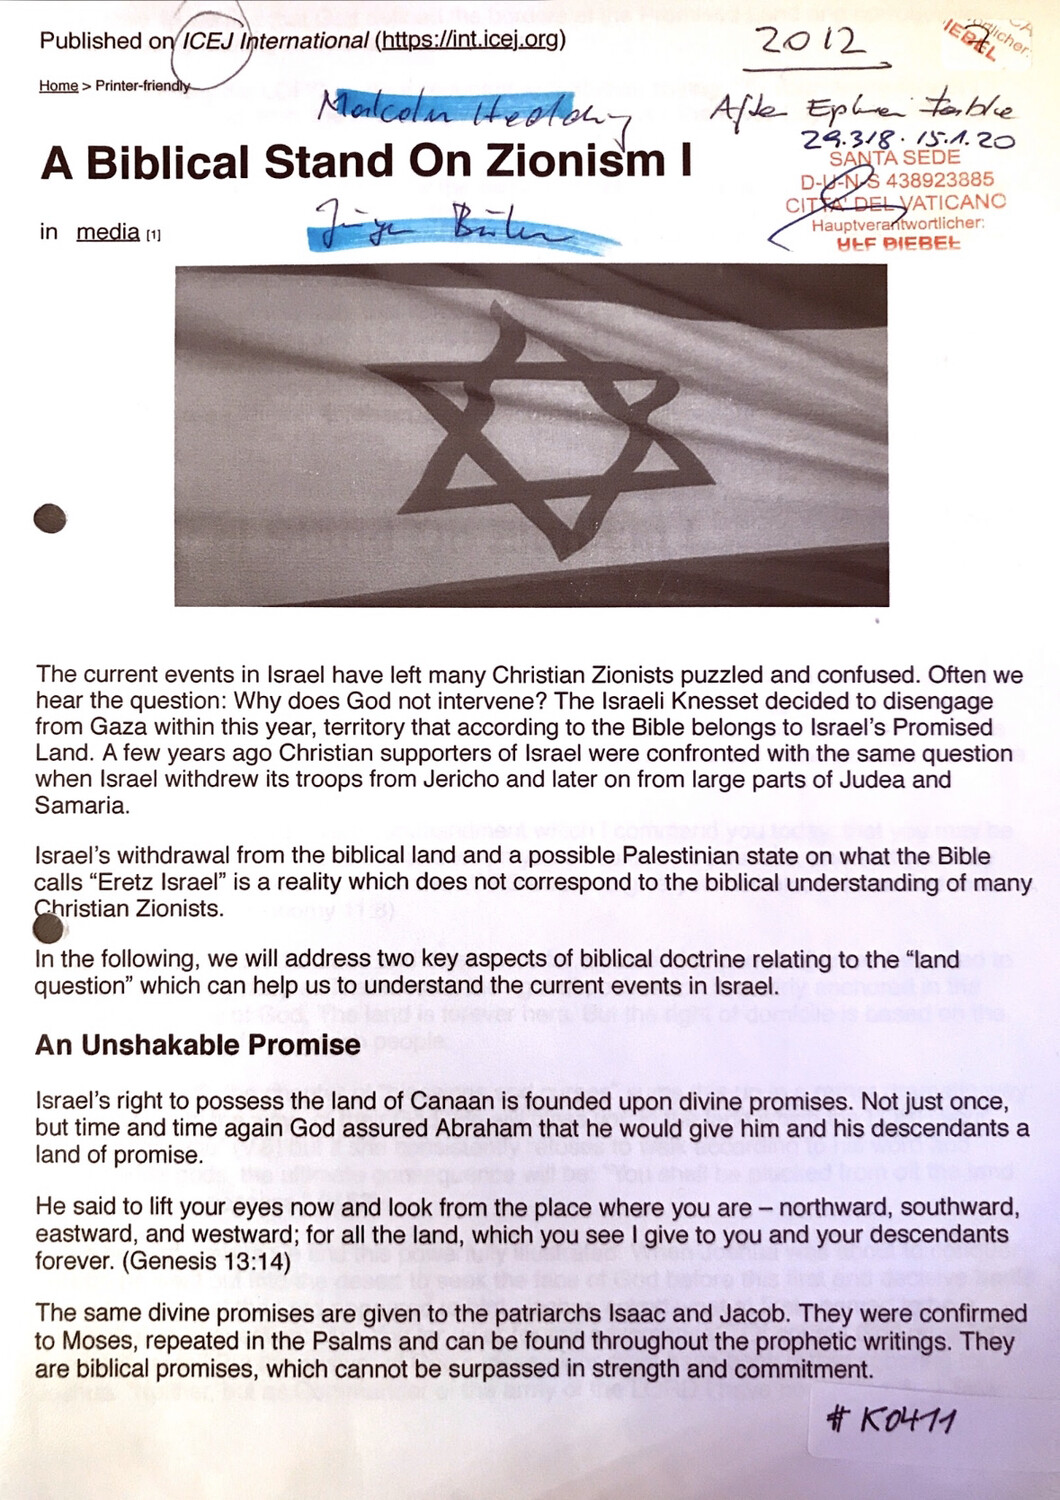 #K0411 l A Biblical Stand On Zionism - Published on ICEJ International